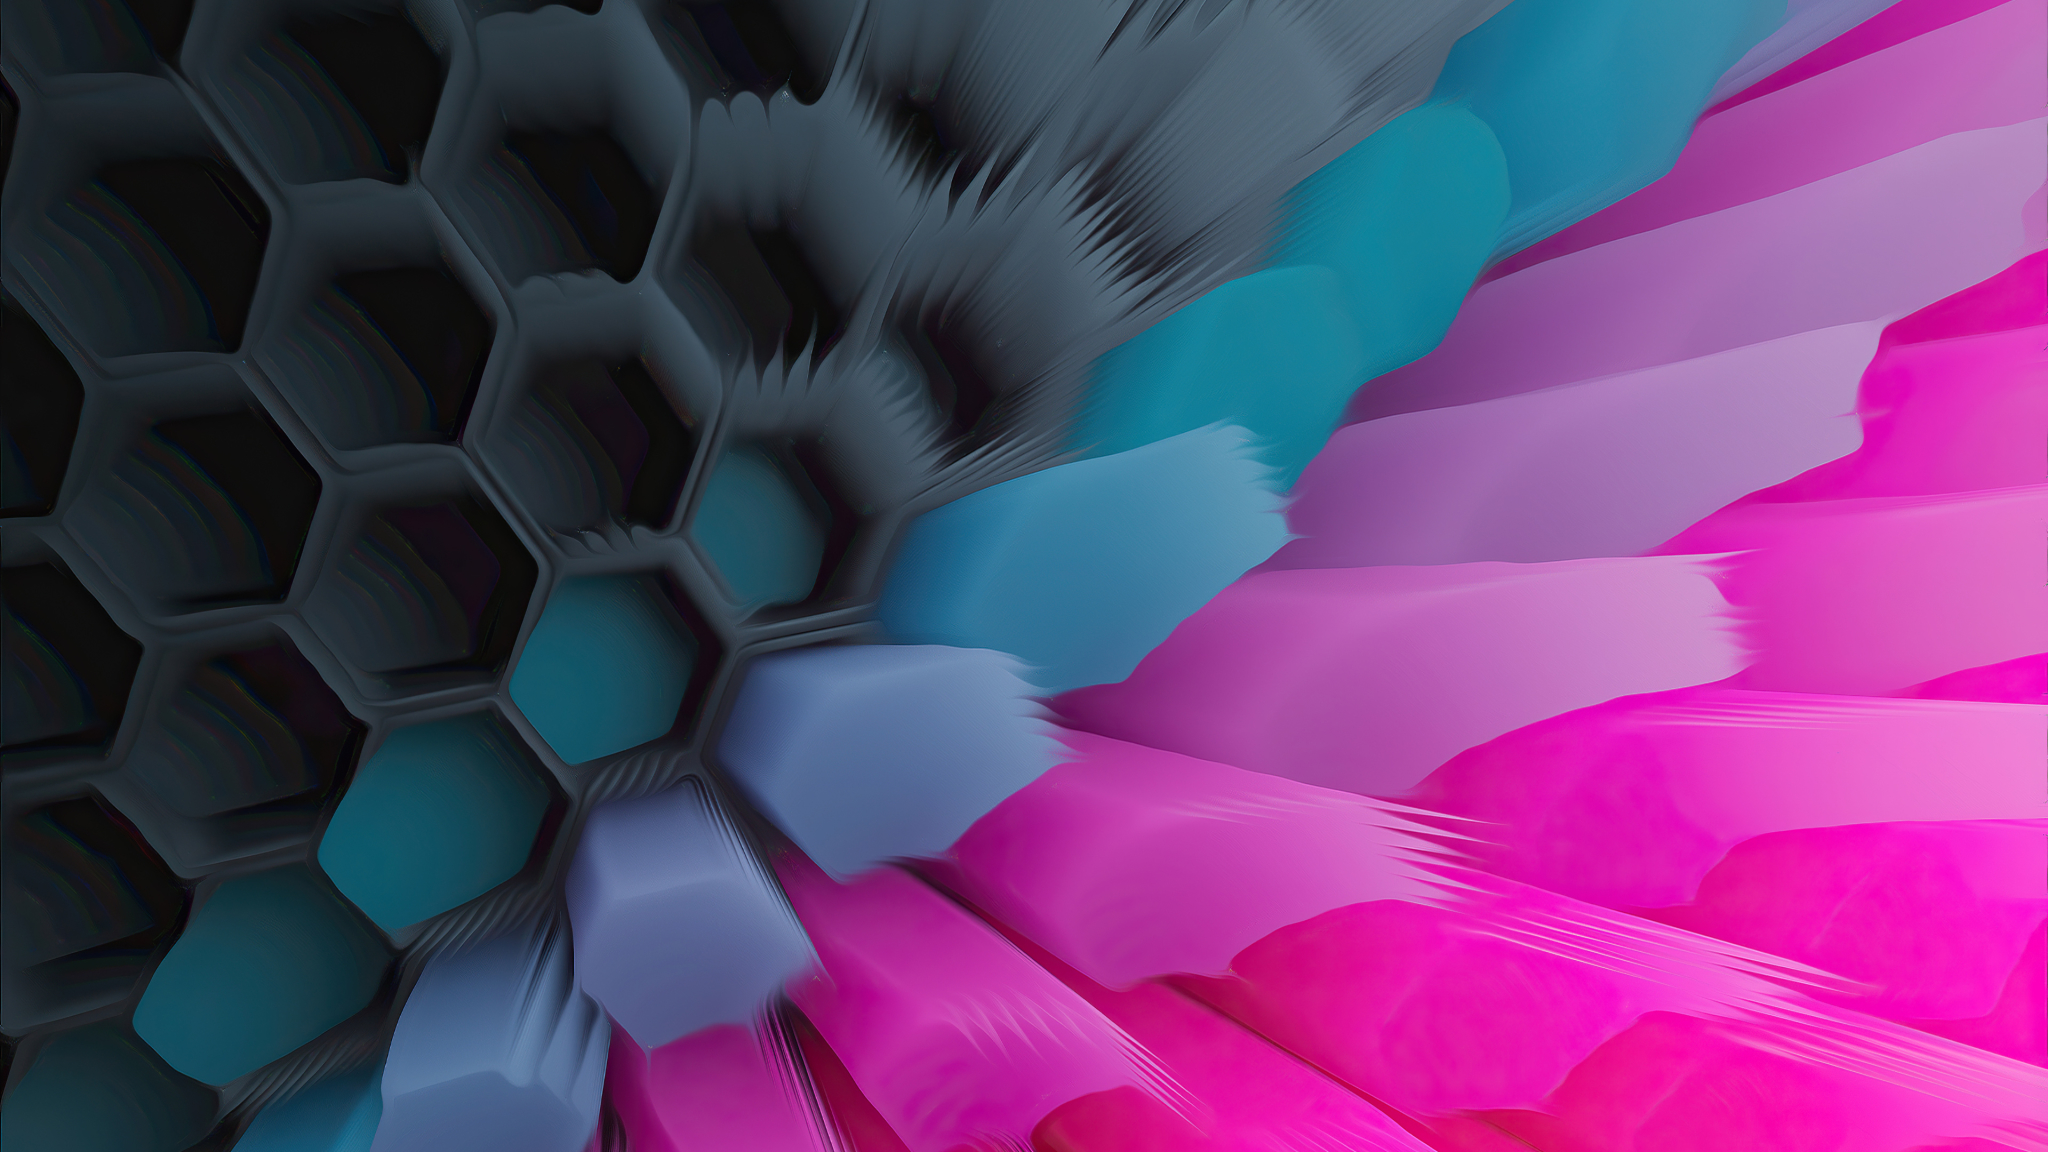 Pink Blue 4K Hexagon Wallpaper in 2048x1152 Resolution